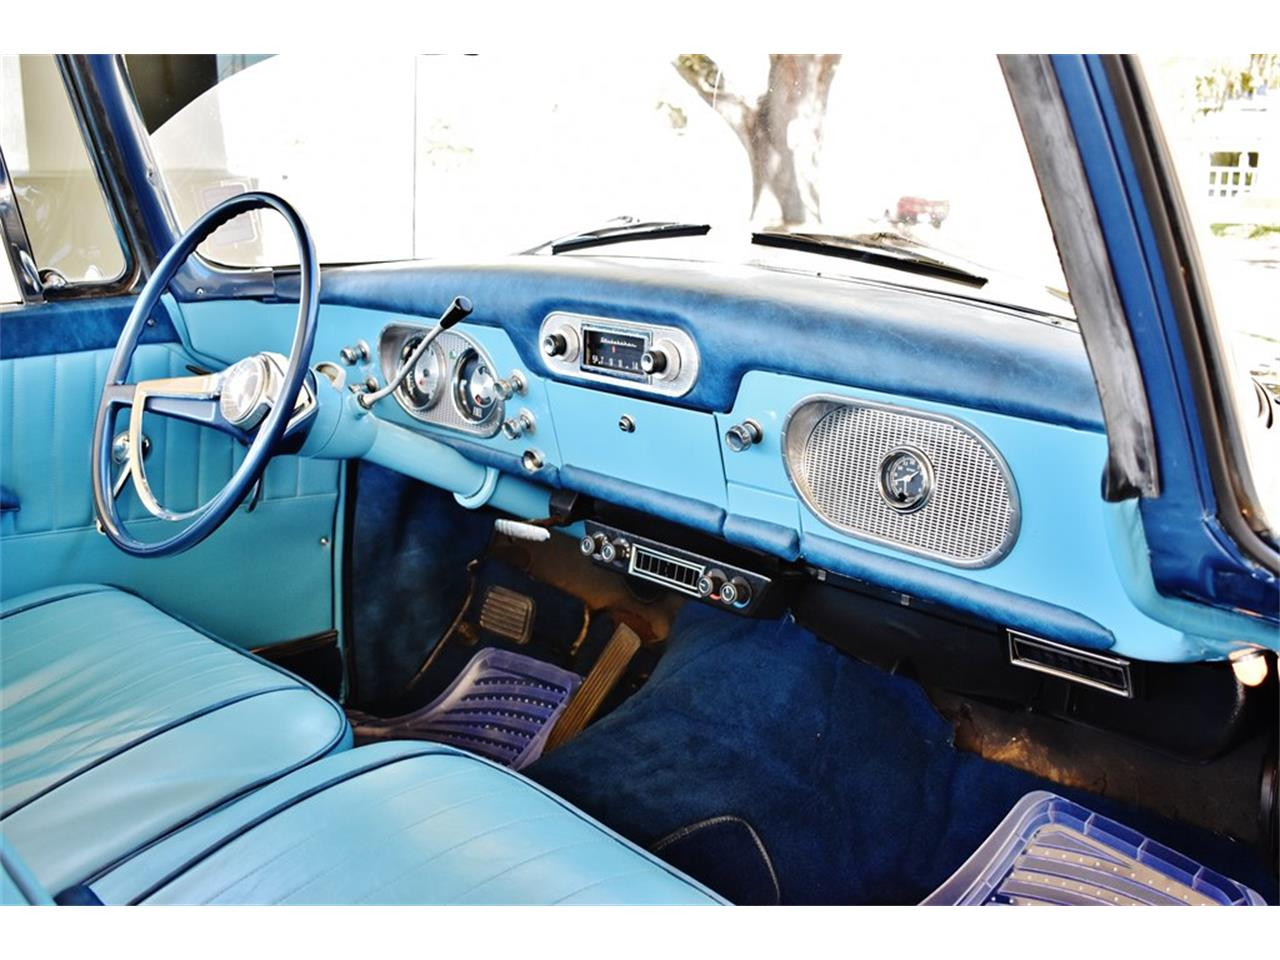 1960 Studebaker Lark for sale in Lakeland, FL – photo 39